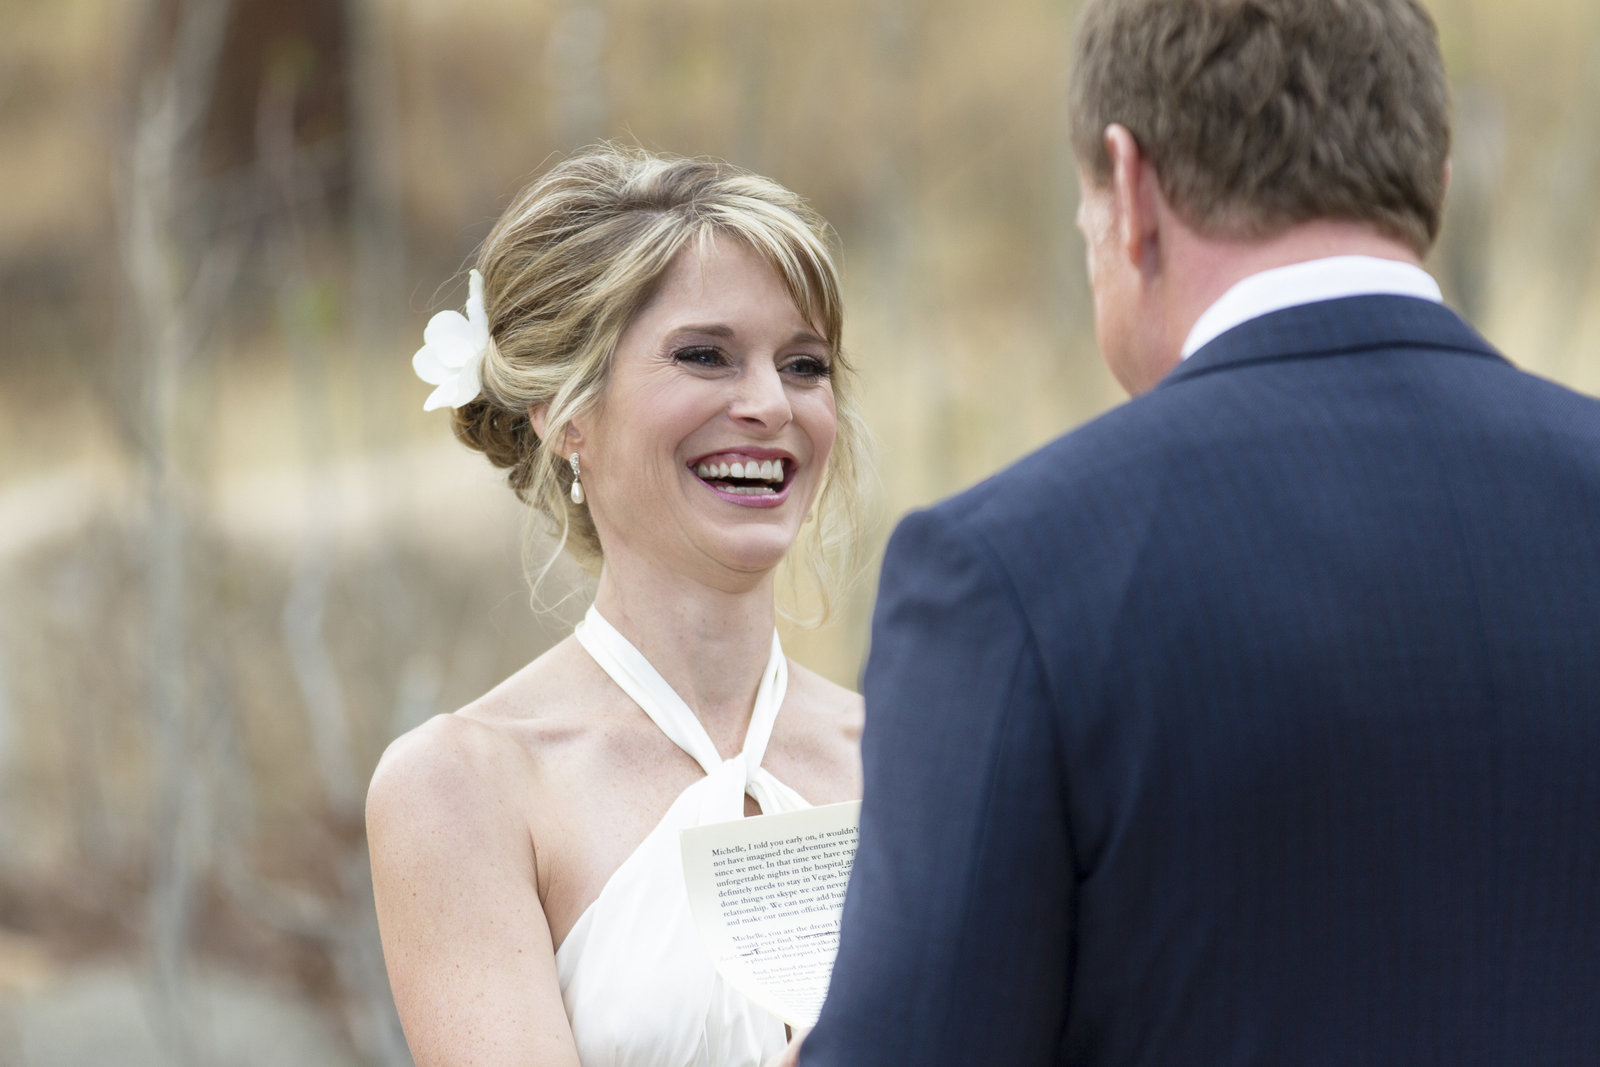 Jessi-Zach-Photography-Colorado-Mountain-Wedding-Photographer-Della-Terra-Mountain-Chateau_1